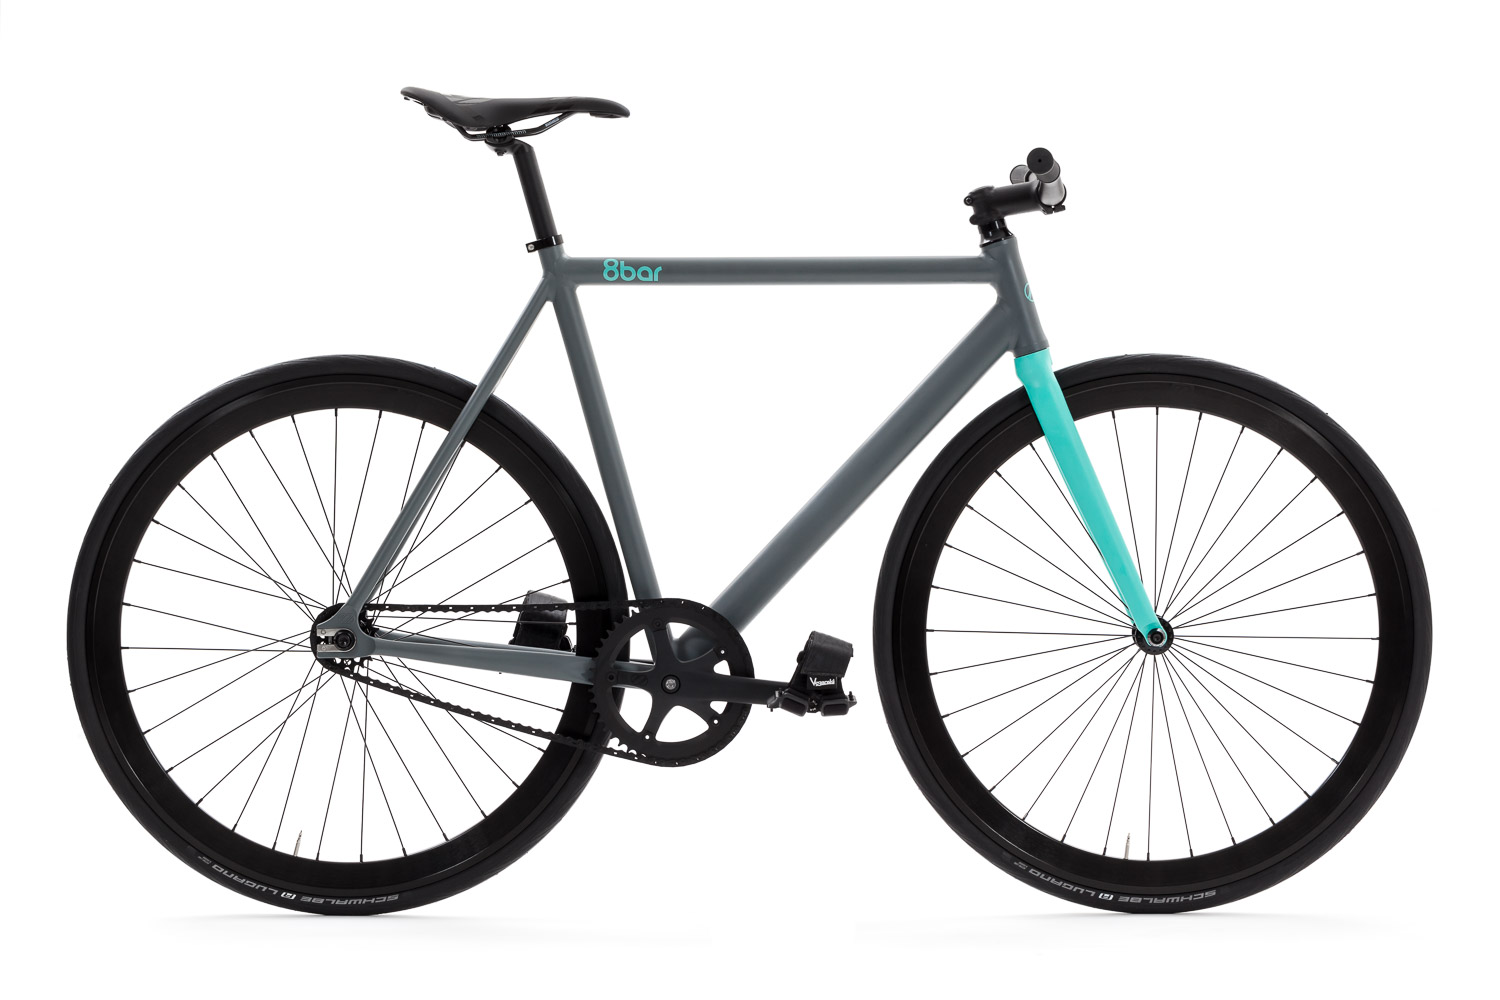 8bar fhain mintgrey bike fixie fixed gear 1 - 8bar FHAIN - sky asphalt - Design Your Frame